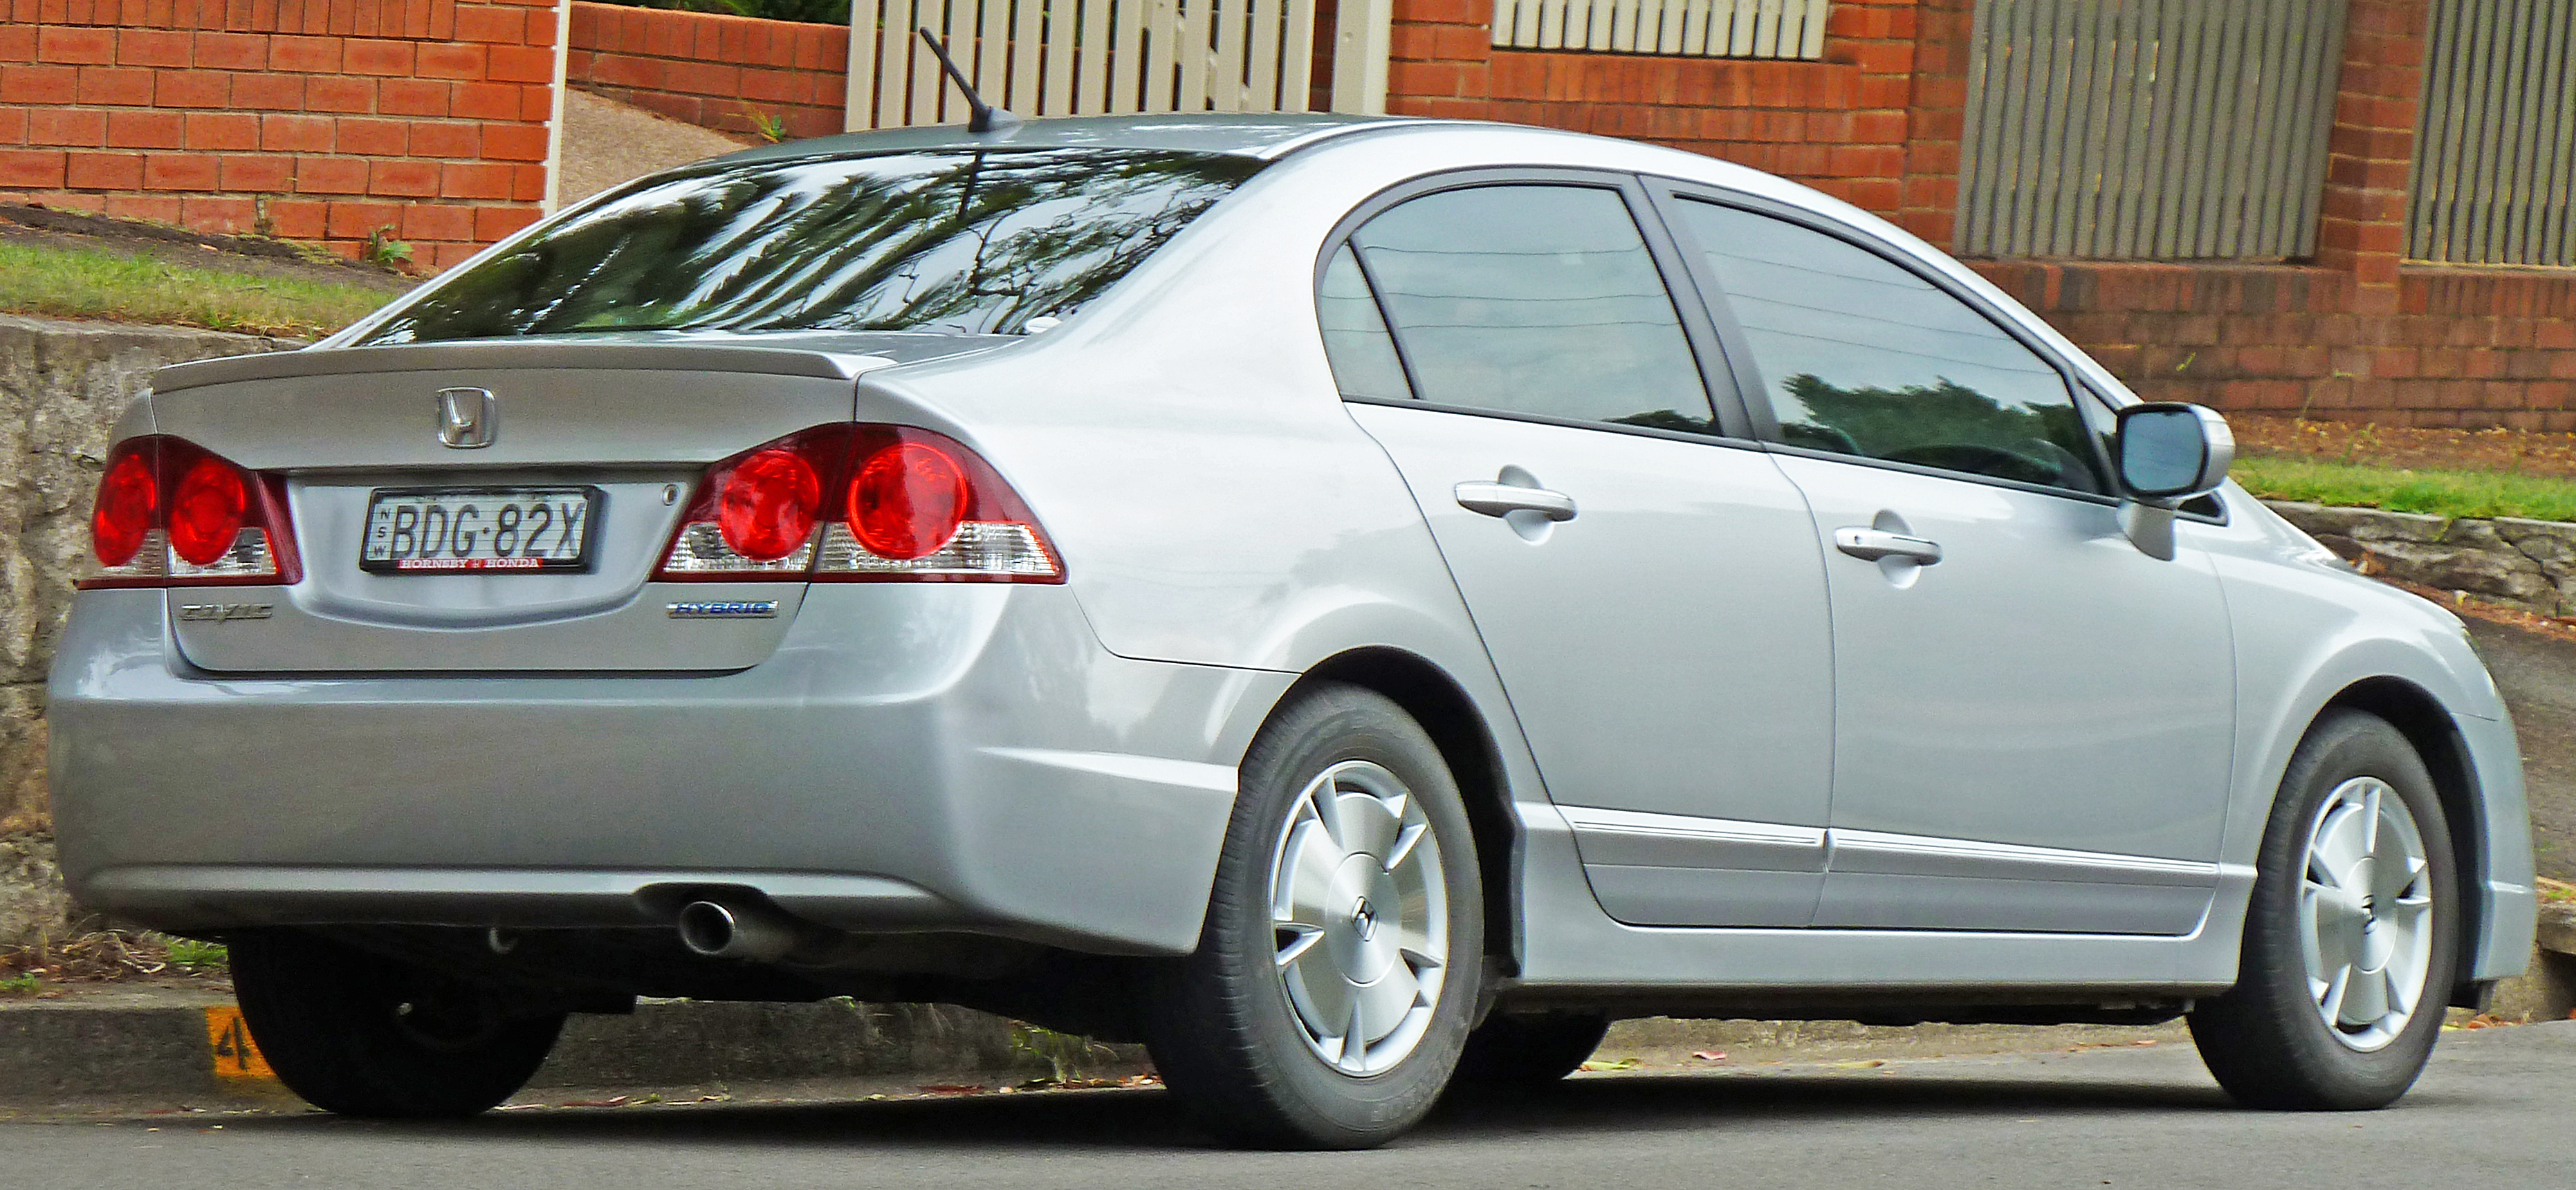 File:2006 2008 Honda Civic Hybrid Sedan (2011 03 10)